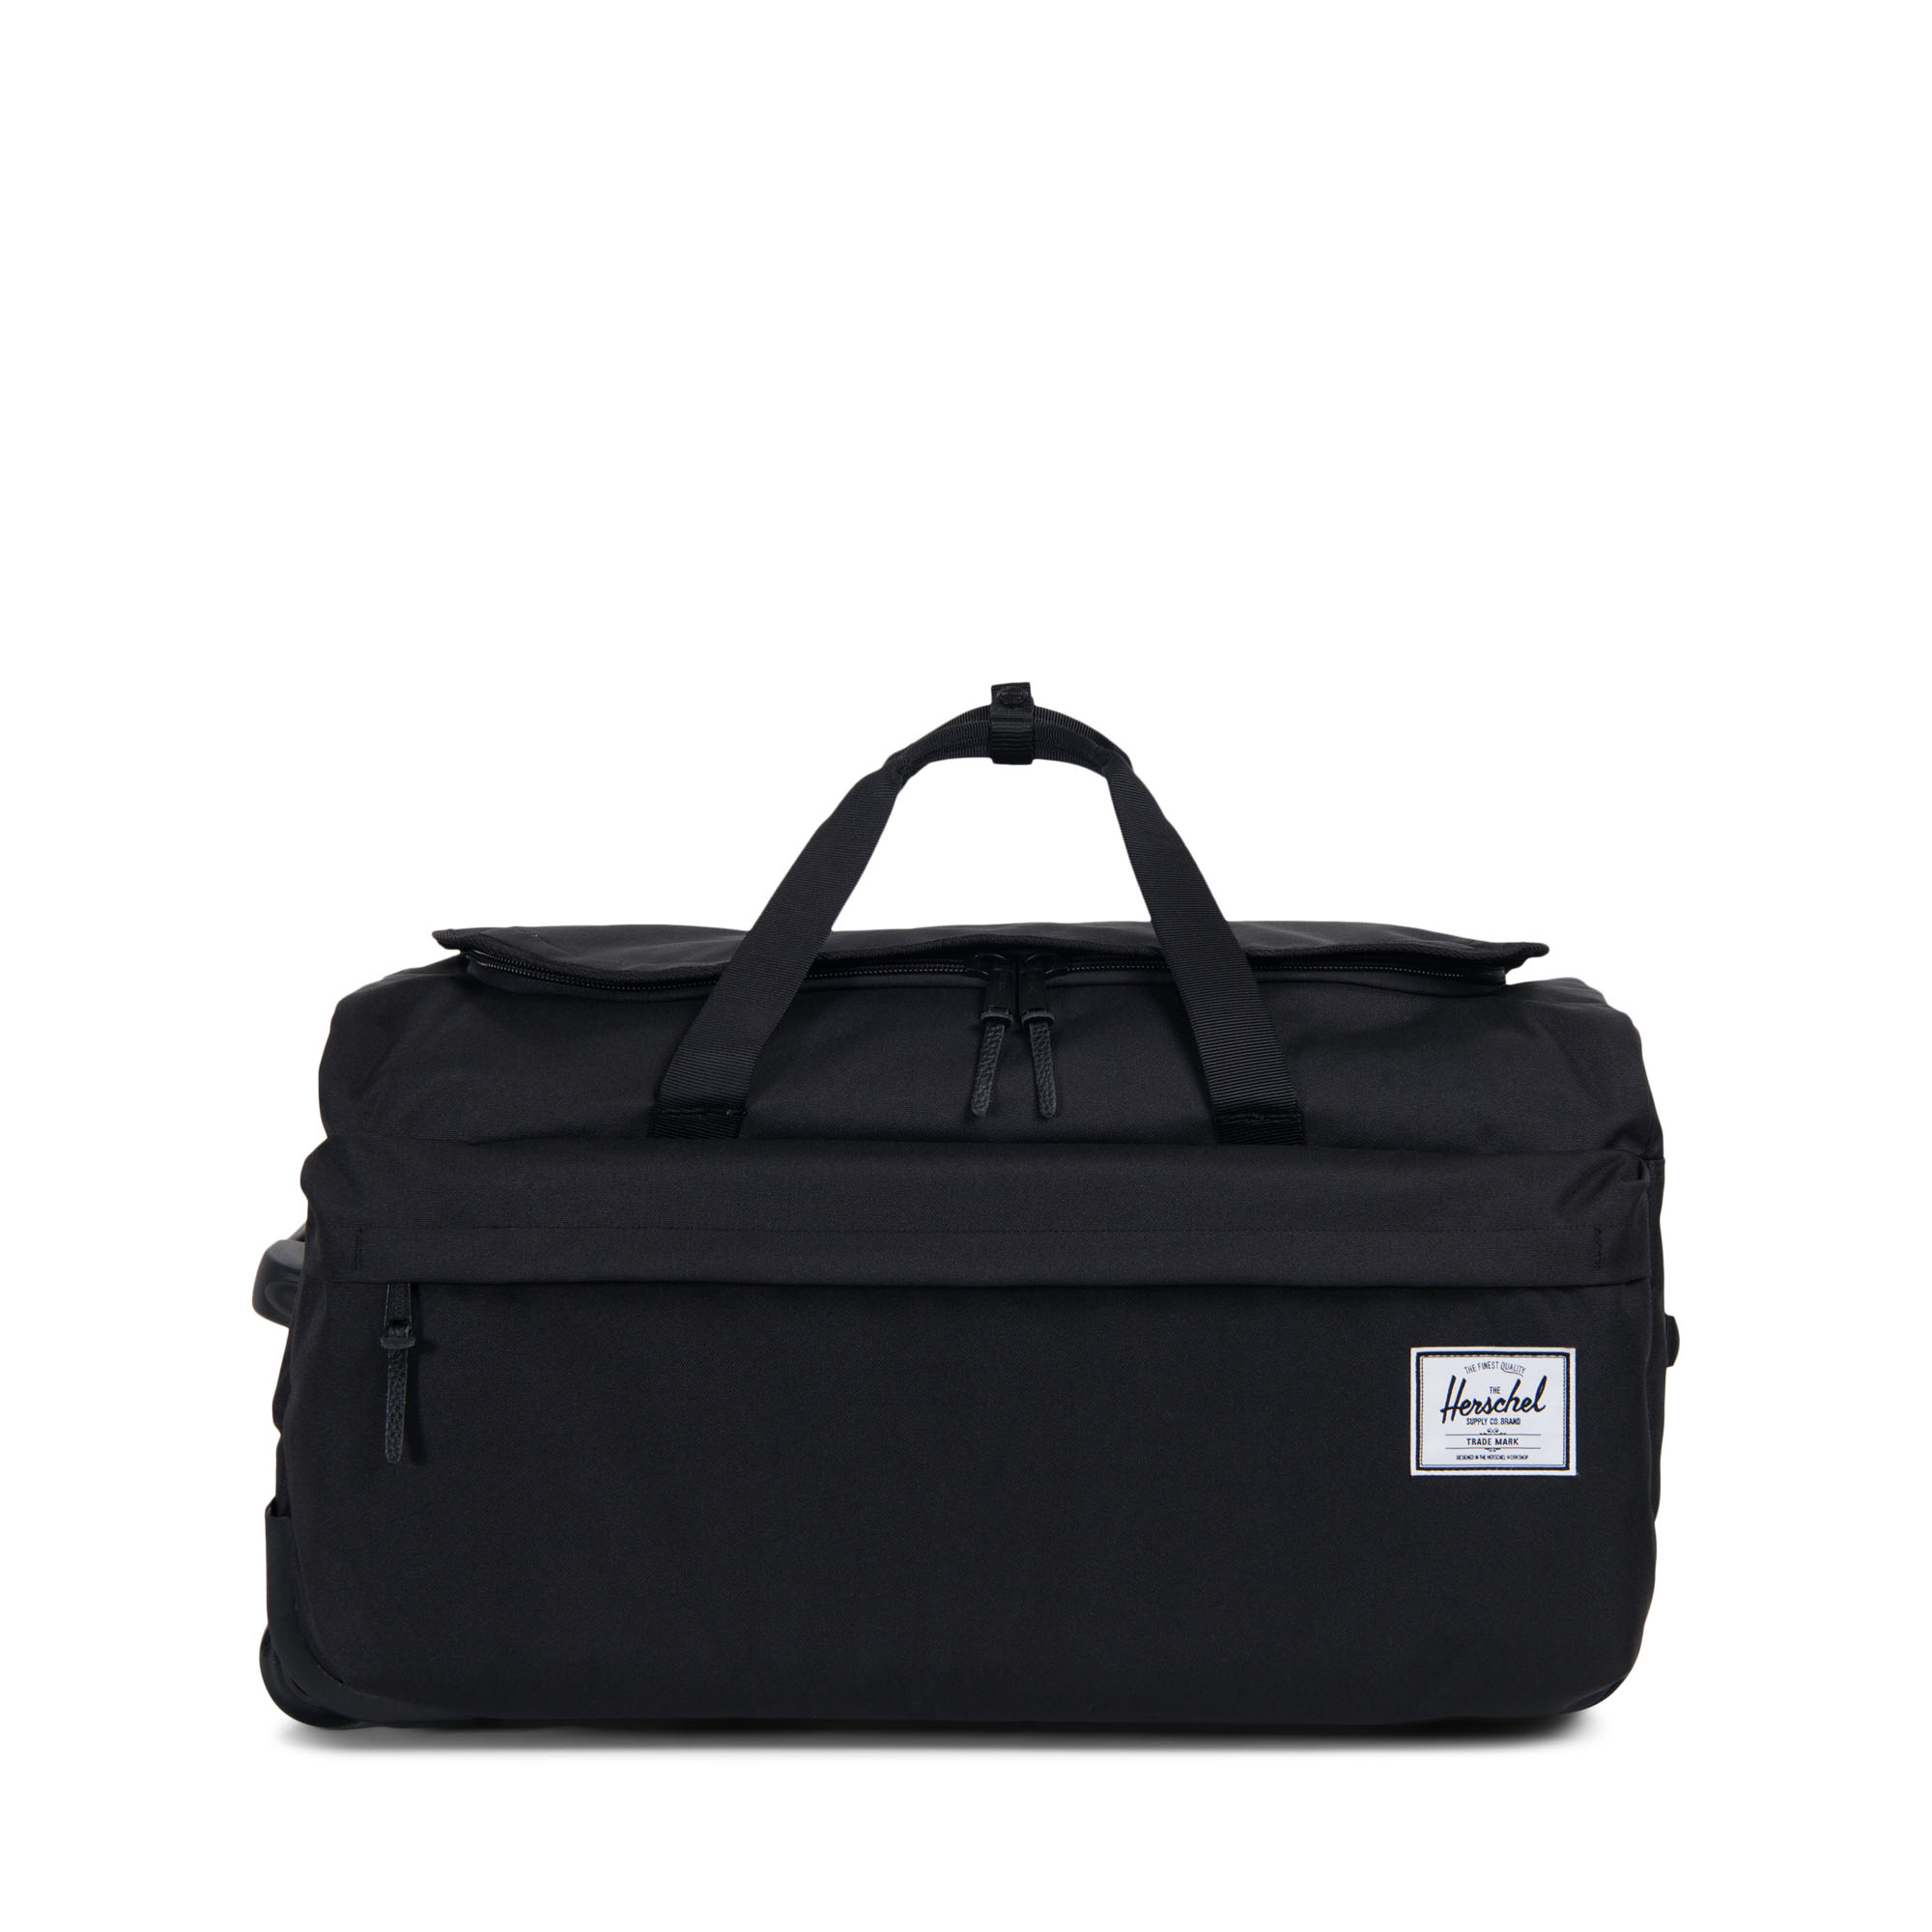 Outfitter Luggage Wheelie  ffe545dc8d074